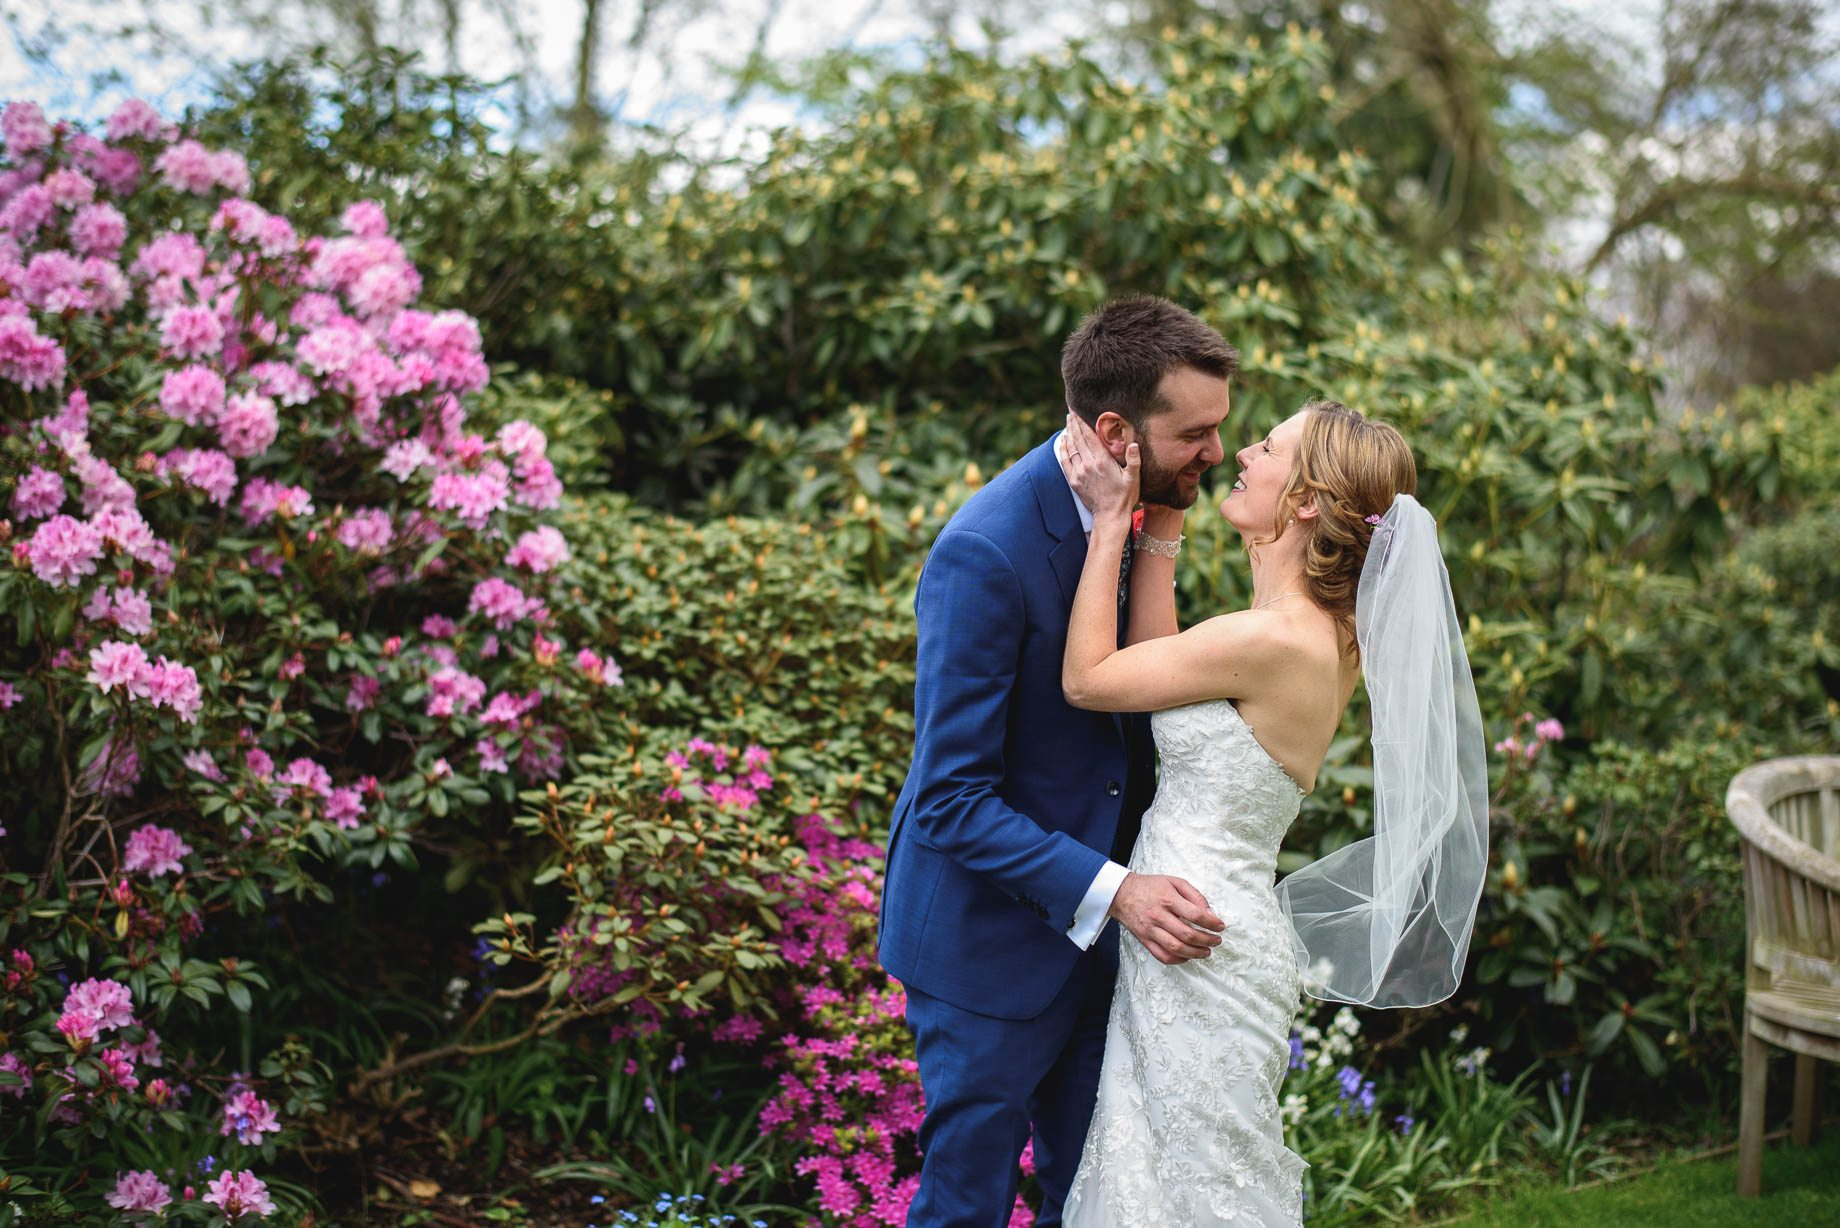 Rivervale Barn wedding photography by Guy Collier - Claire and Simon (94 of 133)